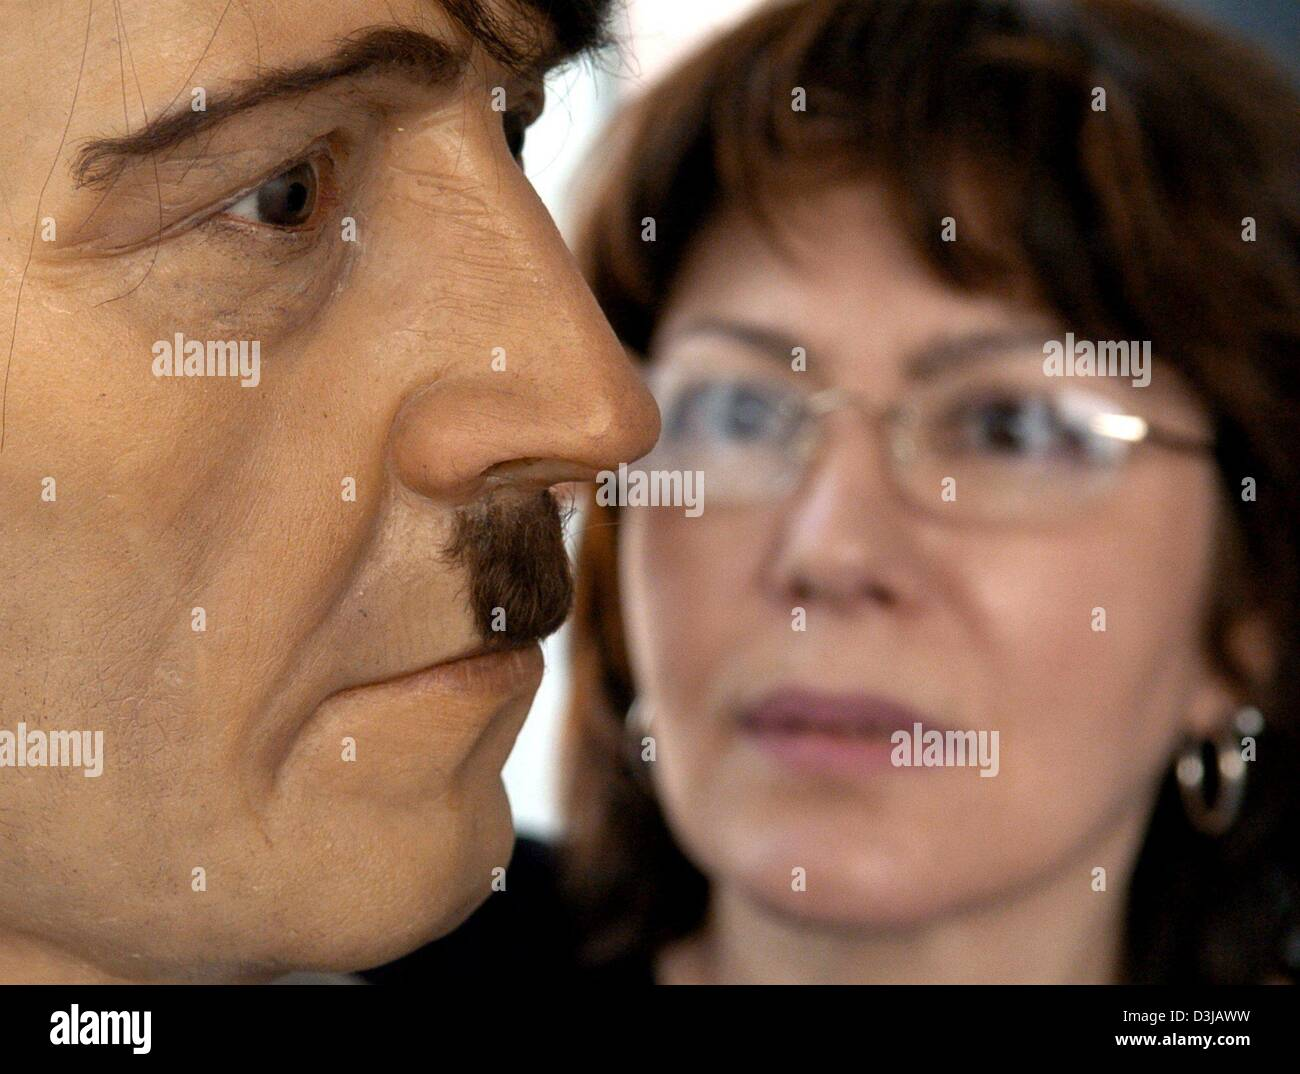 (dpa) A wax figure of Adolf Hitler is observed by a visitor at the wax works in the Friedrichstrasse in Berlin on - Stock Image